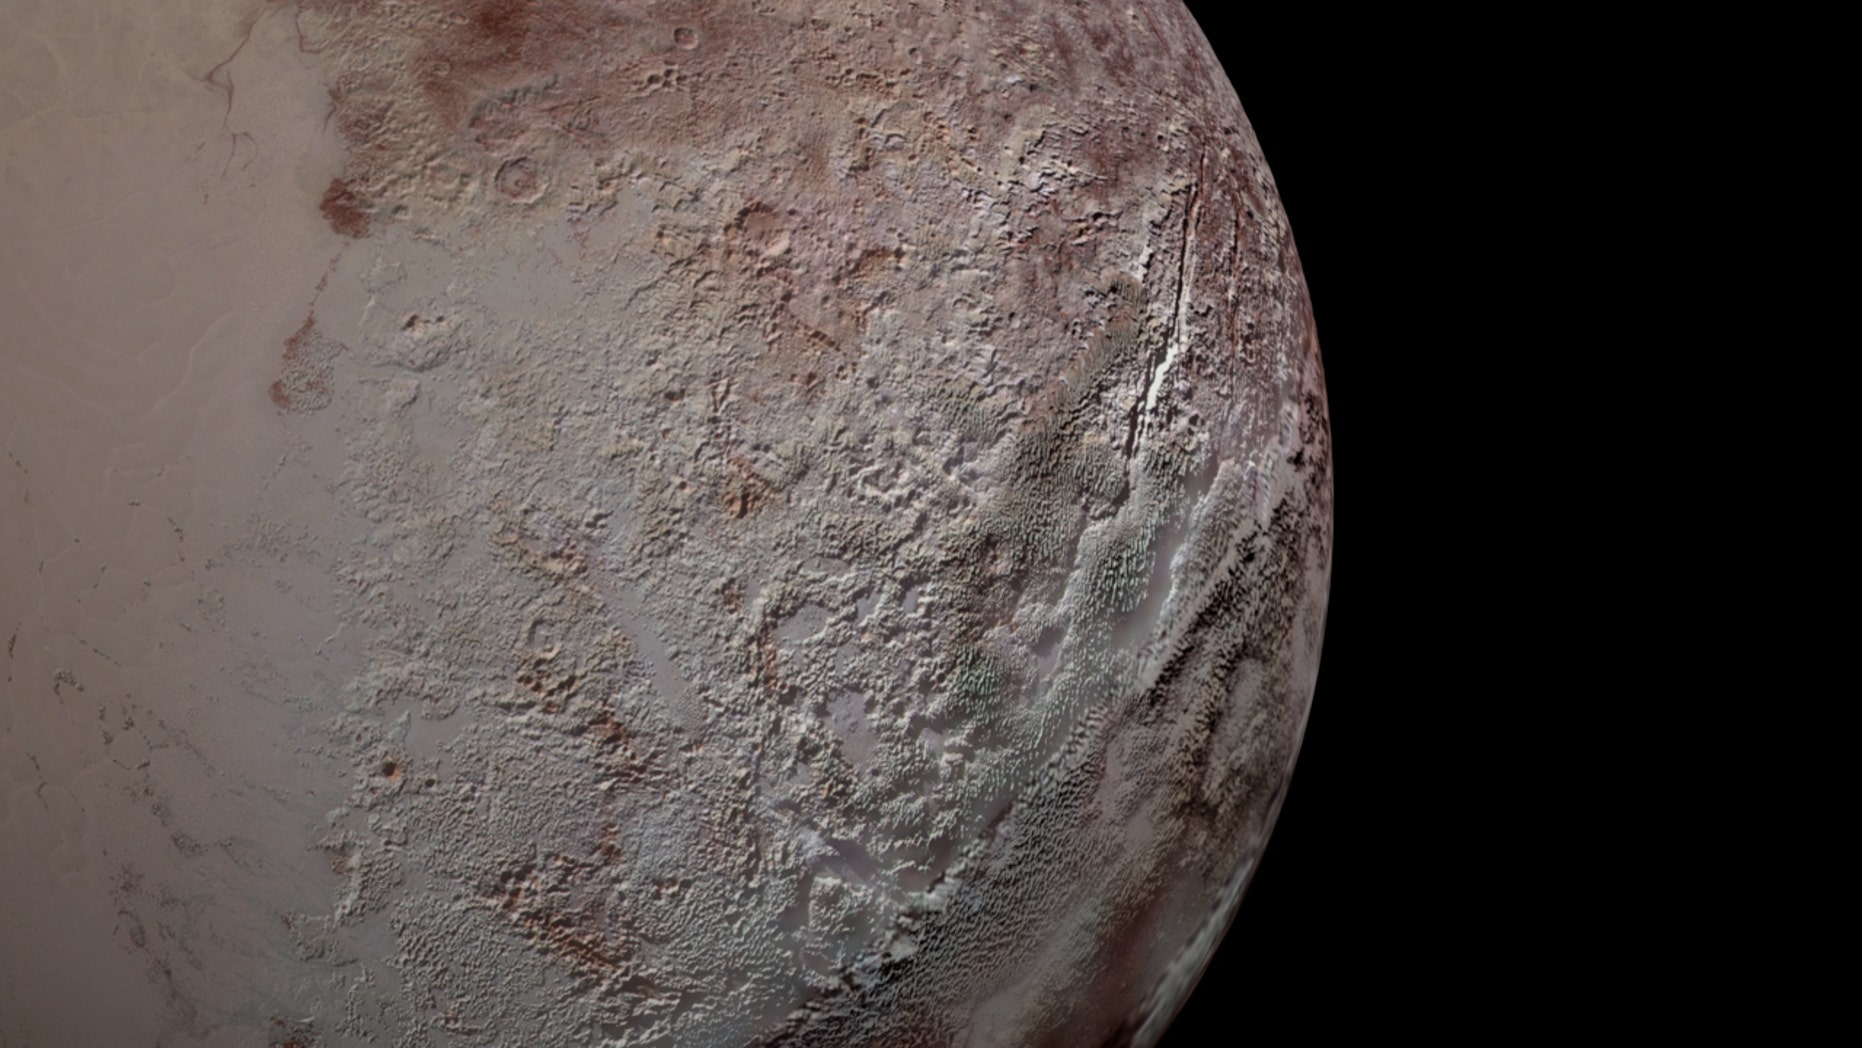 The New Horizons mission that flew by Pluto in 2015 gathered this view of blades of ice on the dwarf planet's surface — many stretching as tall as skyscrapers.